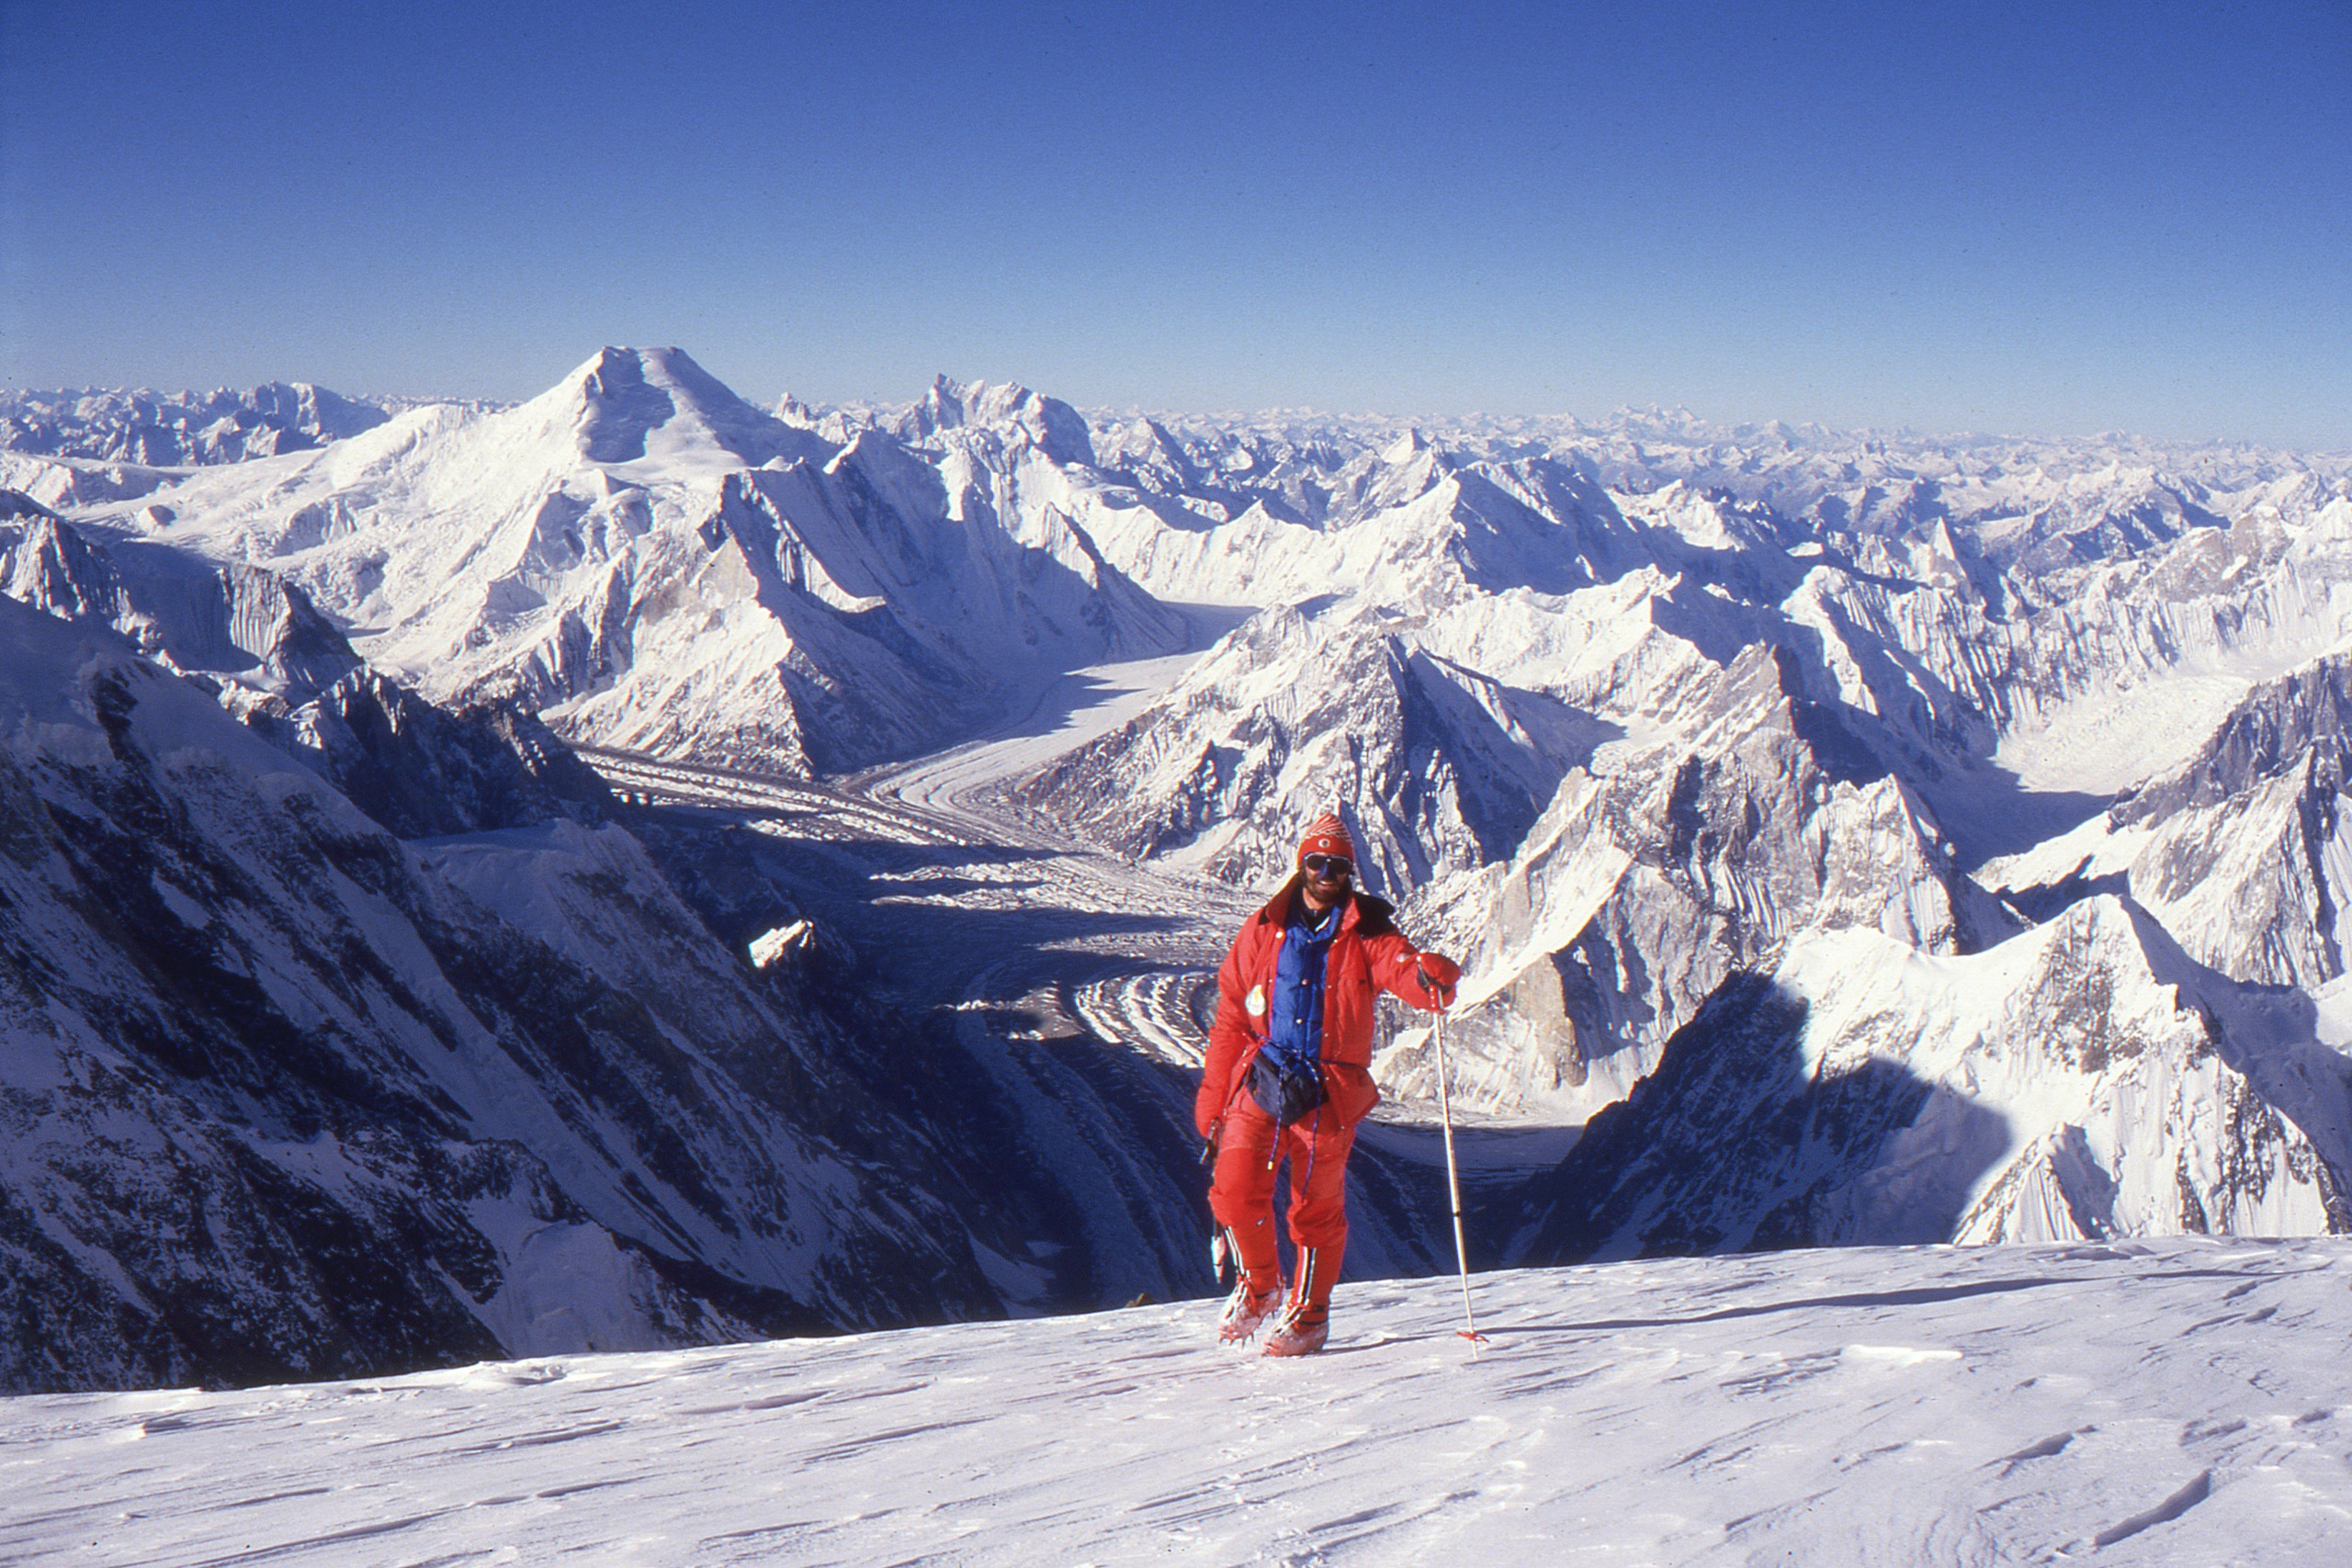 Christian Stangl on top of K2 360 summit view July 31st